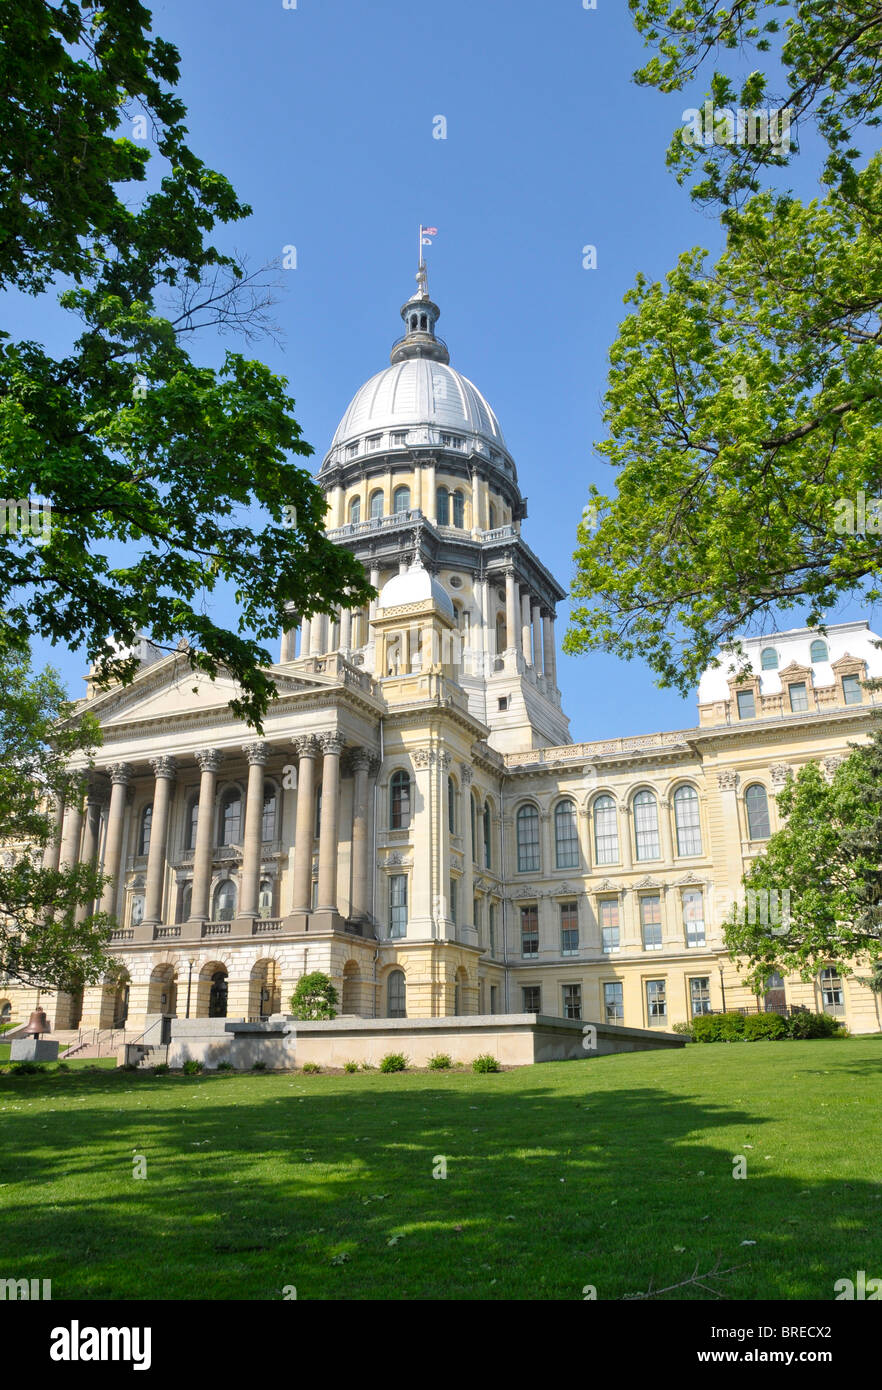 Illinois State Capitol Building Springfield Illinois - Stock Image